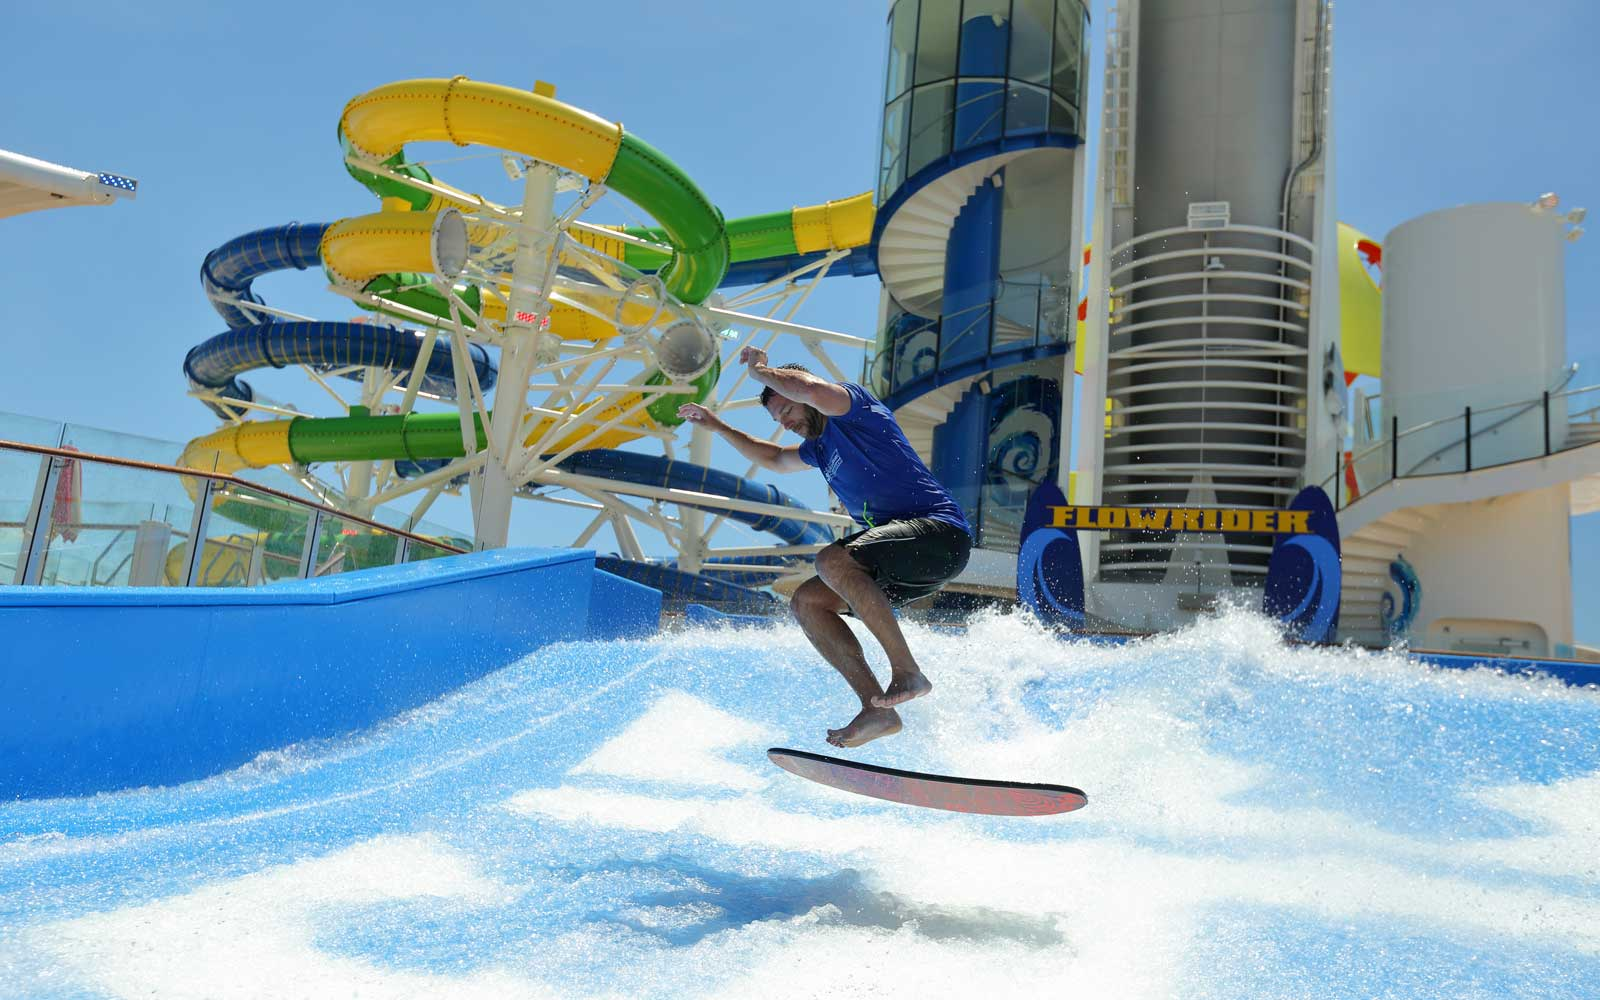 Flowrider attraction on the Royal Caribbean Mariner of the Seas